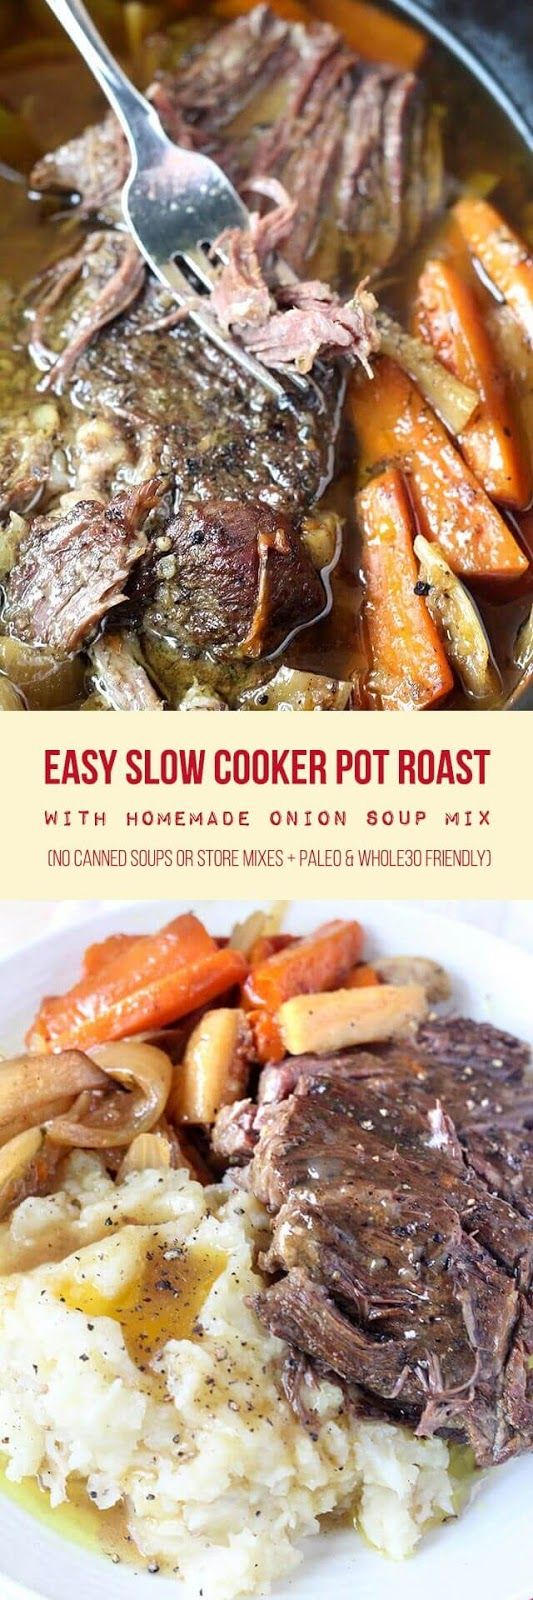 Fall-apart tender pot roast cooked in the crock-pot with root vegetables and homemade onion soup mix. This super easy recipe takes about 20 minutes to prep and can be made in as little as 4-5 hours on the high setting. Serve with your favorite mashed potatoes for the best comforting meal. | Paleo | Whole30 | Real Food Recipes | Dinner Recipes |